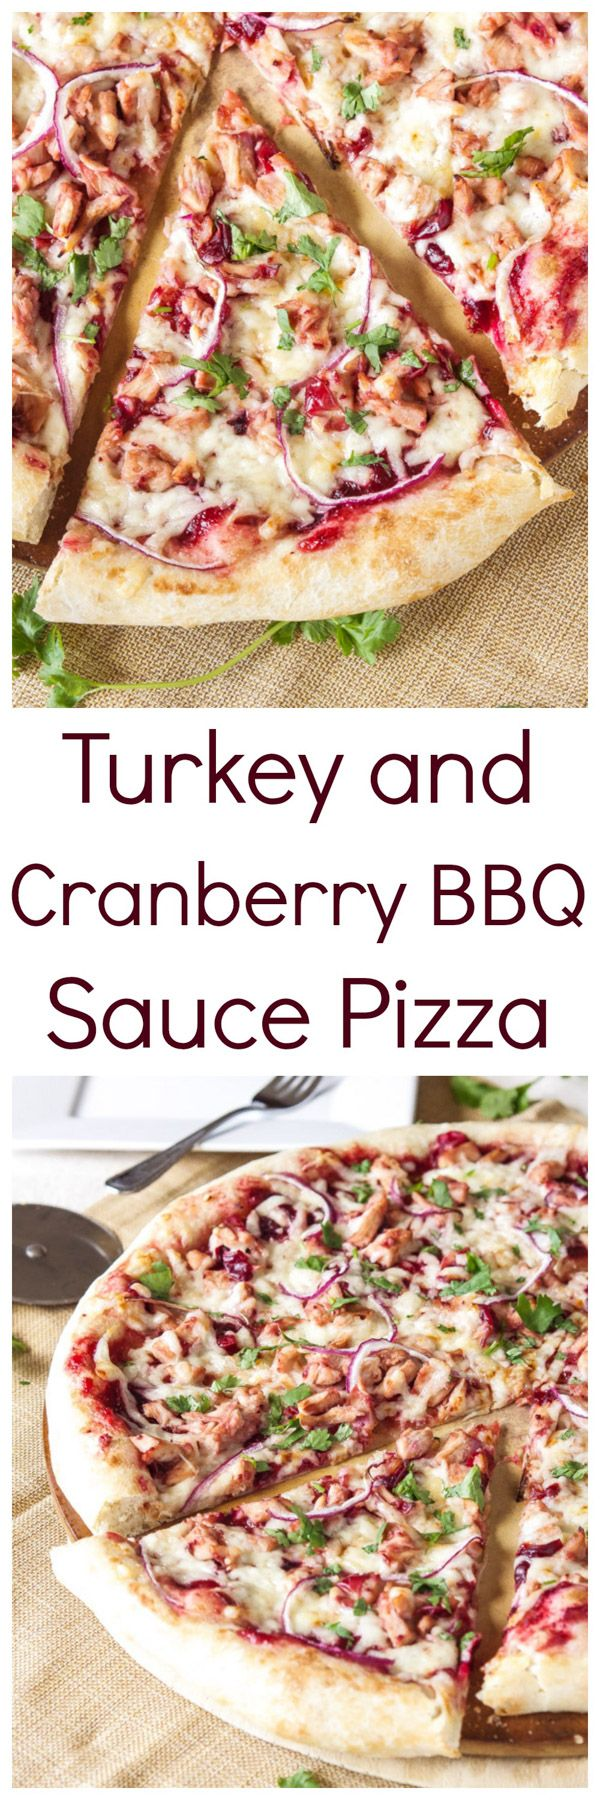 Turkey and Cranberry BBQ Sauce Pizza   Recipe Runner   Use up that leftover Thanksgiving turkey and cranberry sauce in this amazing BBQ pizza!